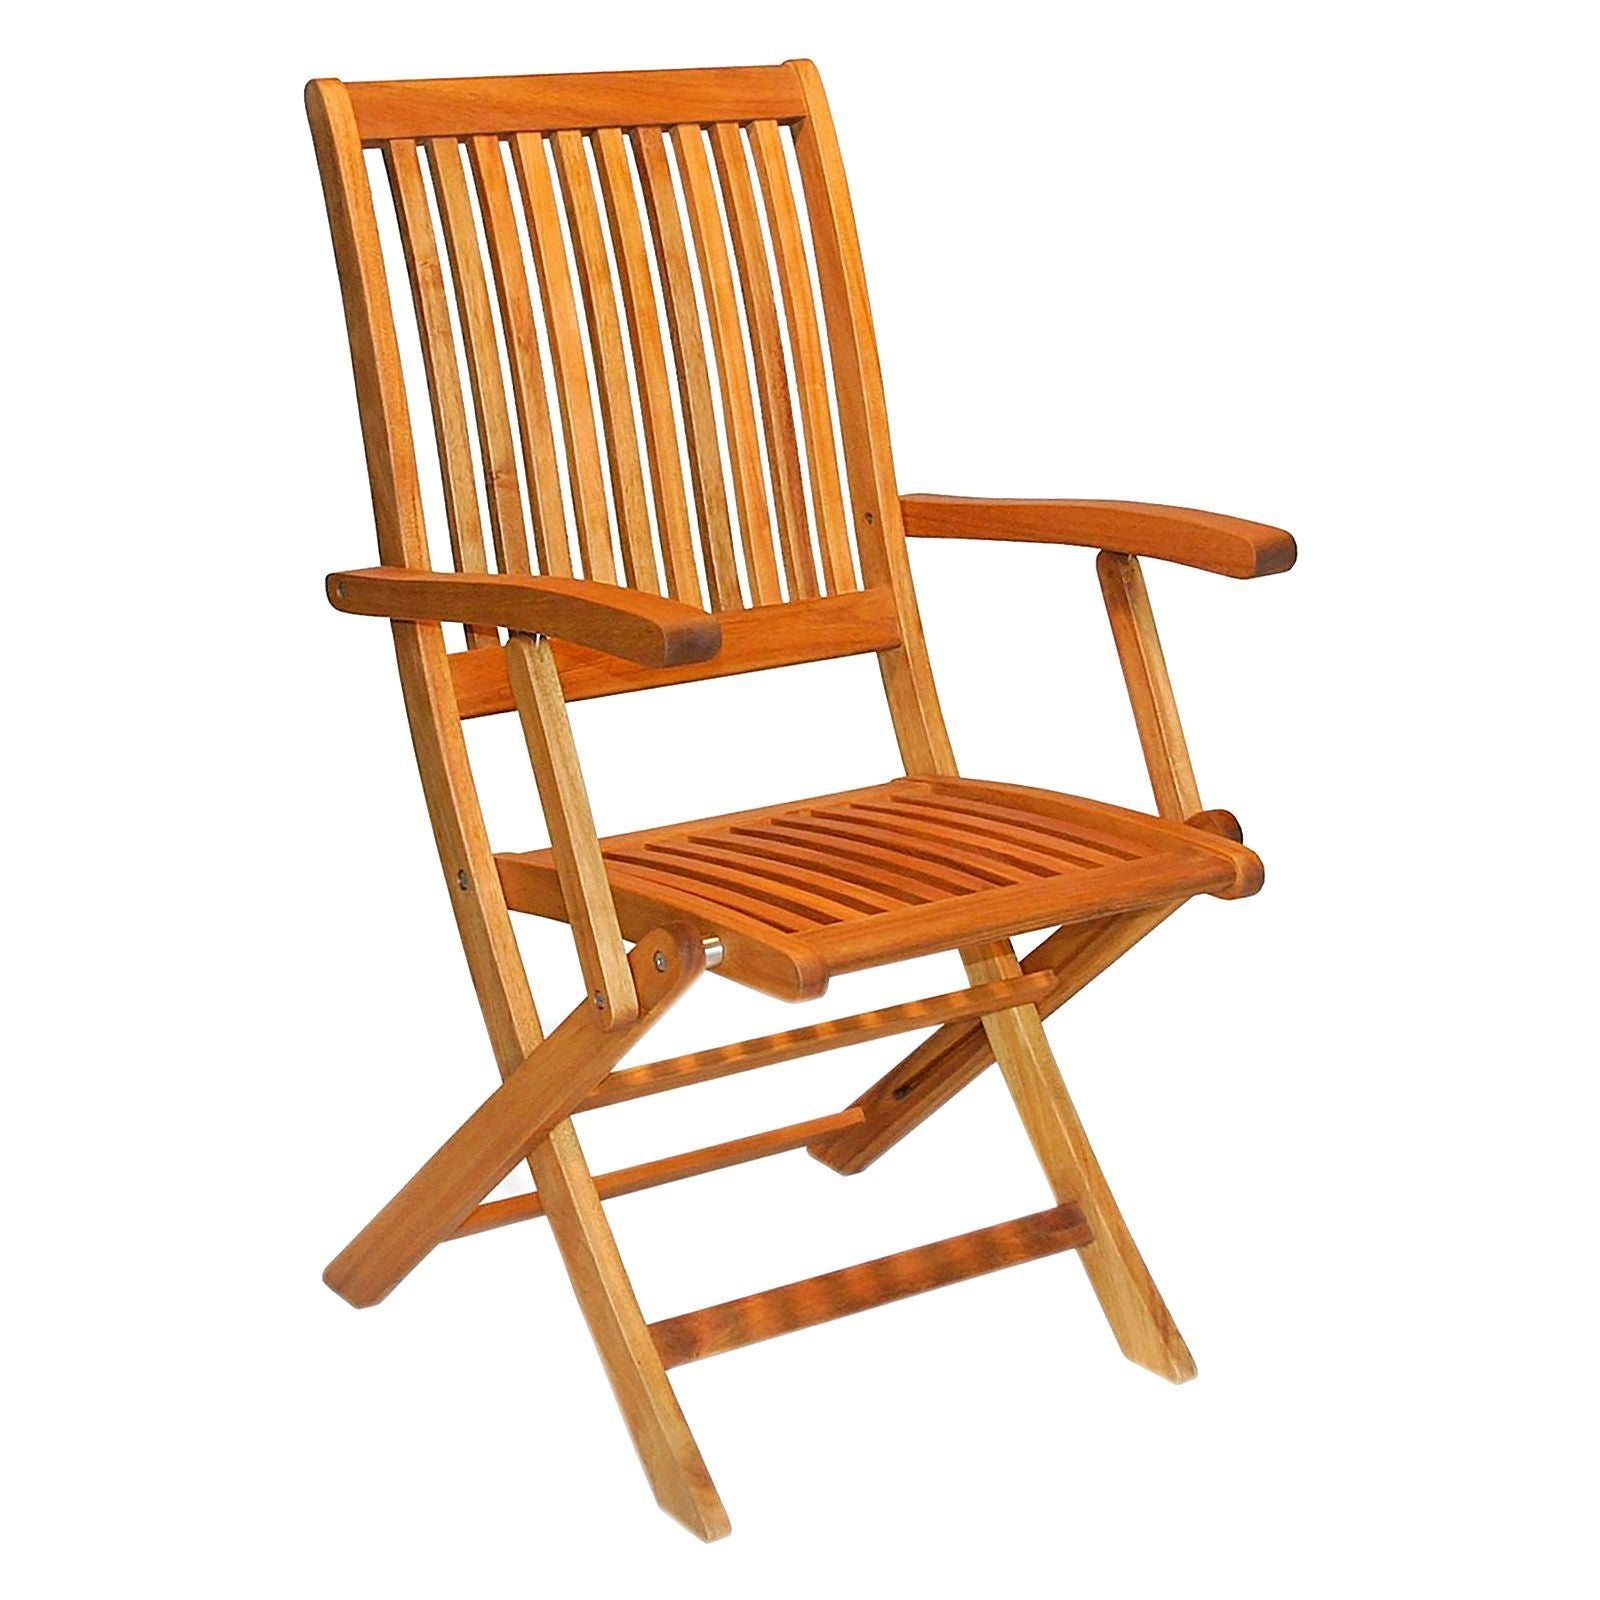 Espanyol Folding Outdoor Armchair - Outdoor Living Essentials